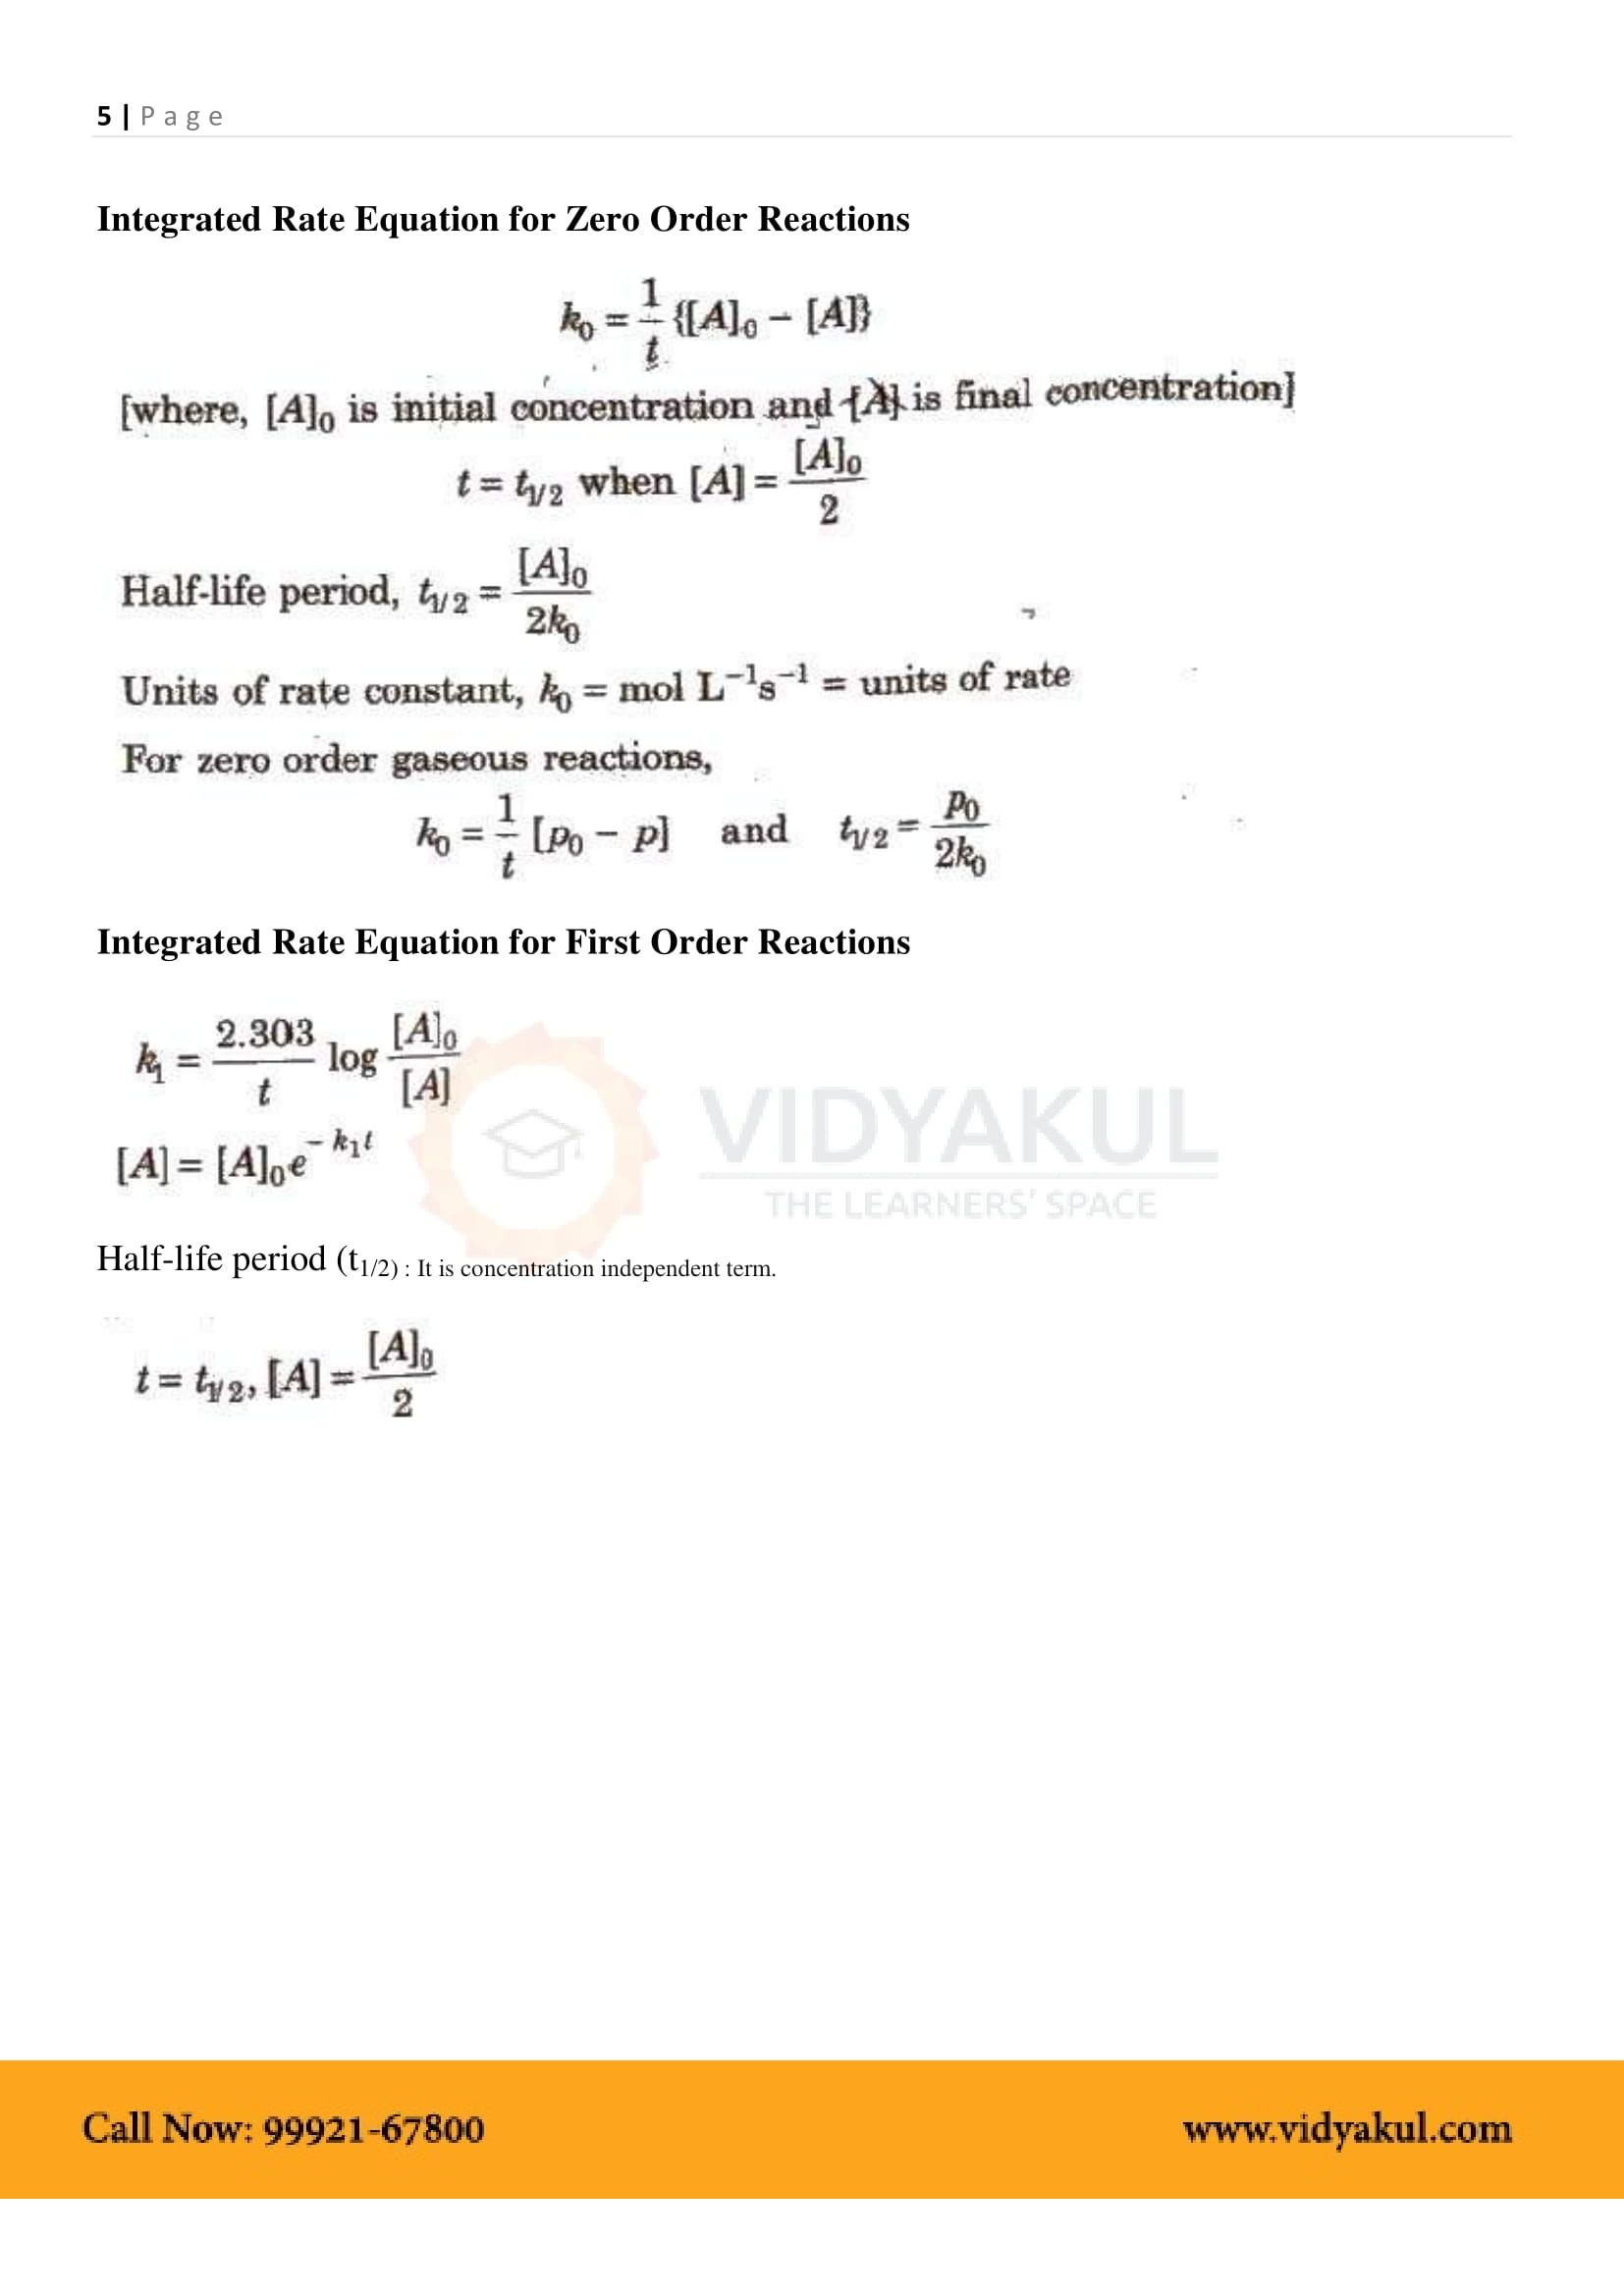 Chemical Kinetics Class 12 Notes Vidyakul With Images